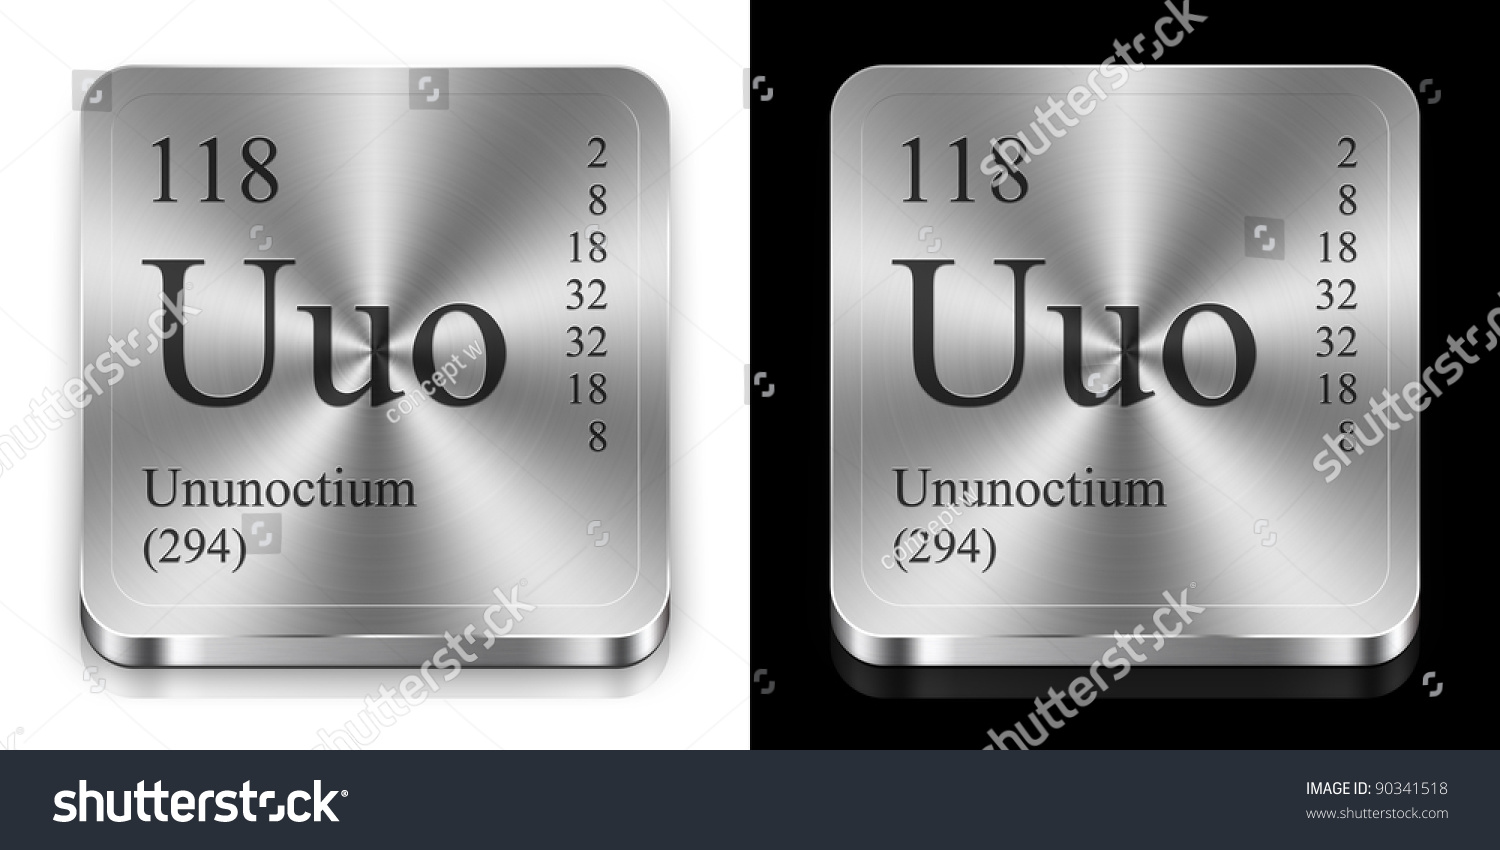 Ununoctium element periodic table two steel stock illustration ununoctium element of the periodic table two steel web buttons urtaz Images